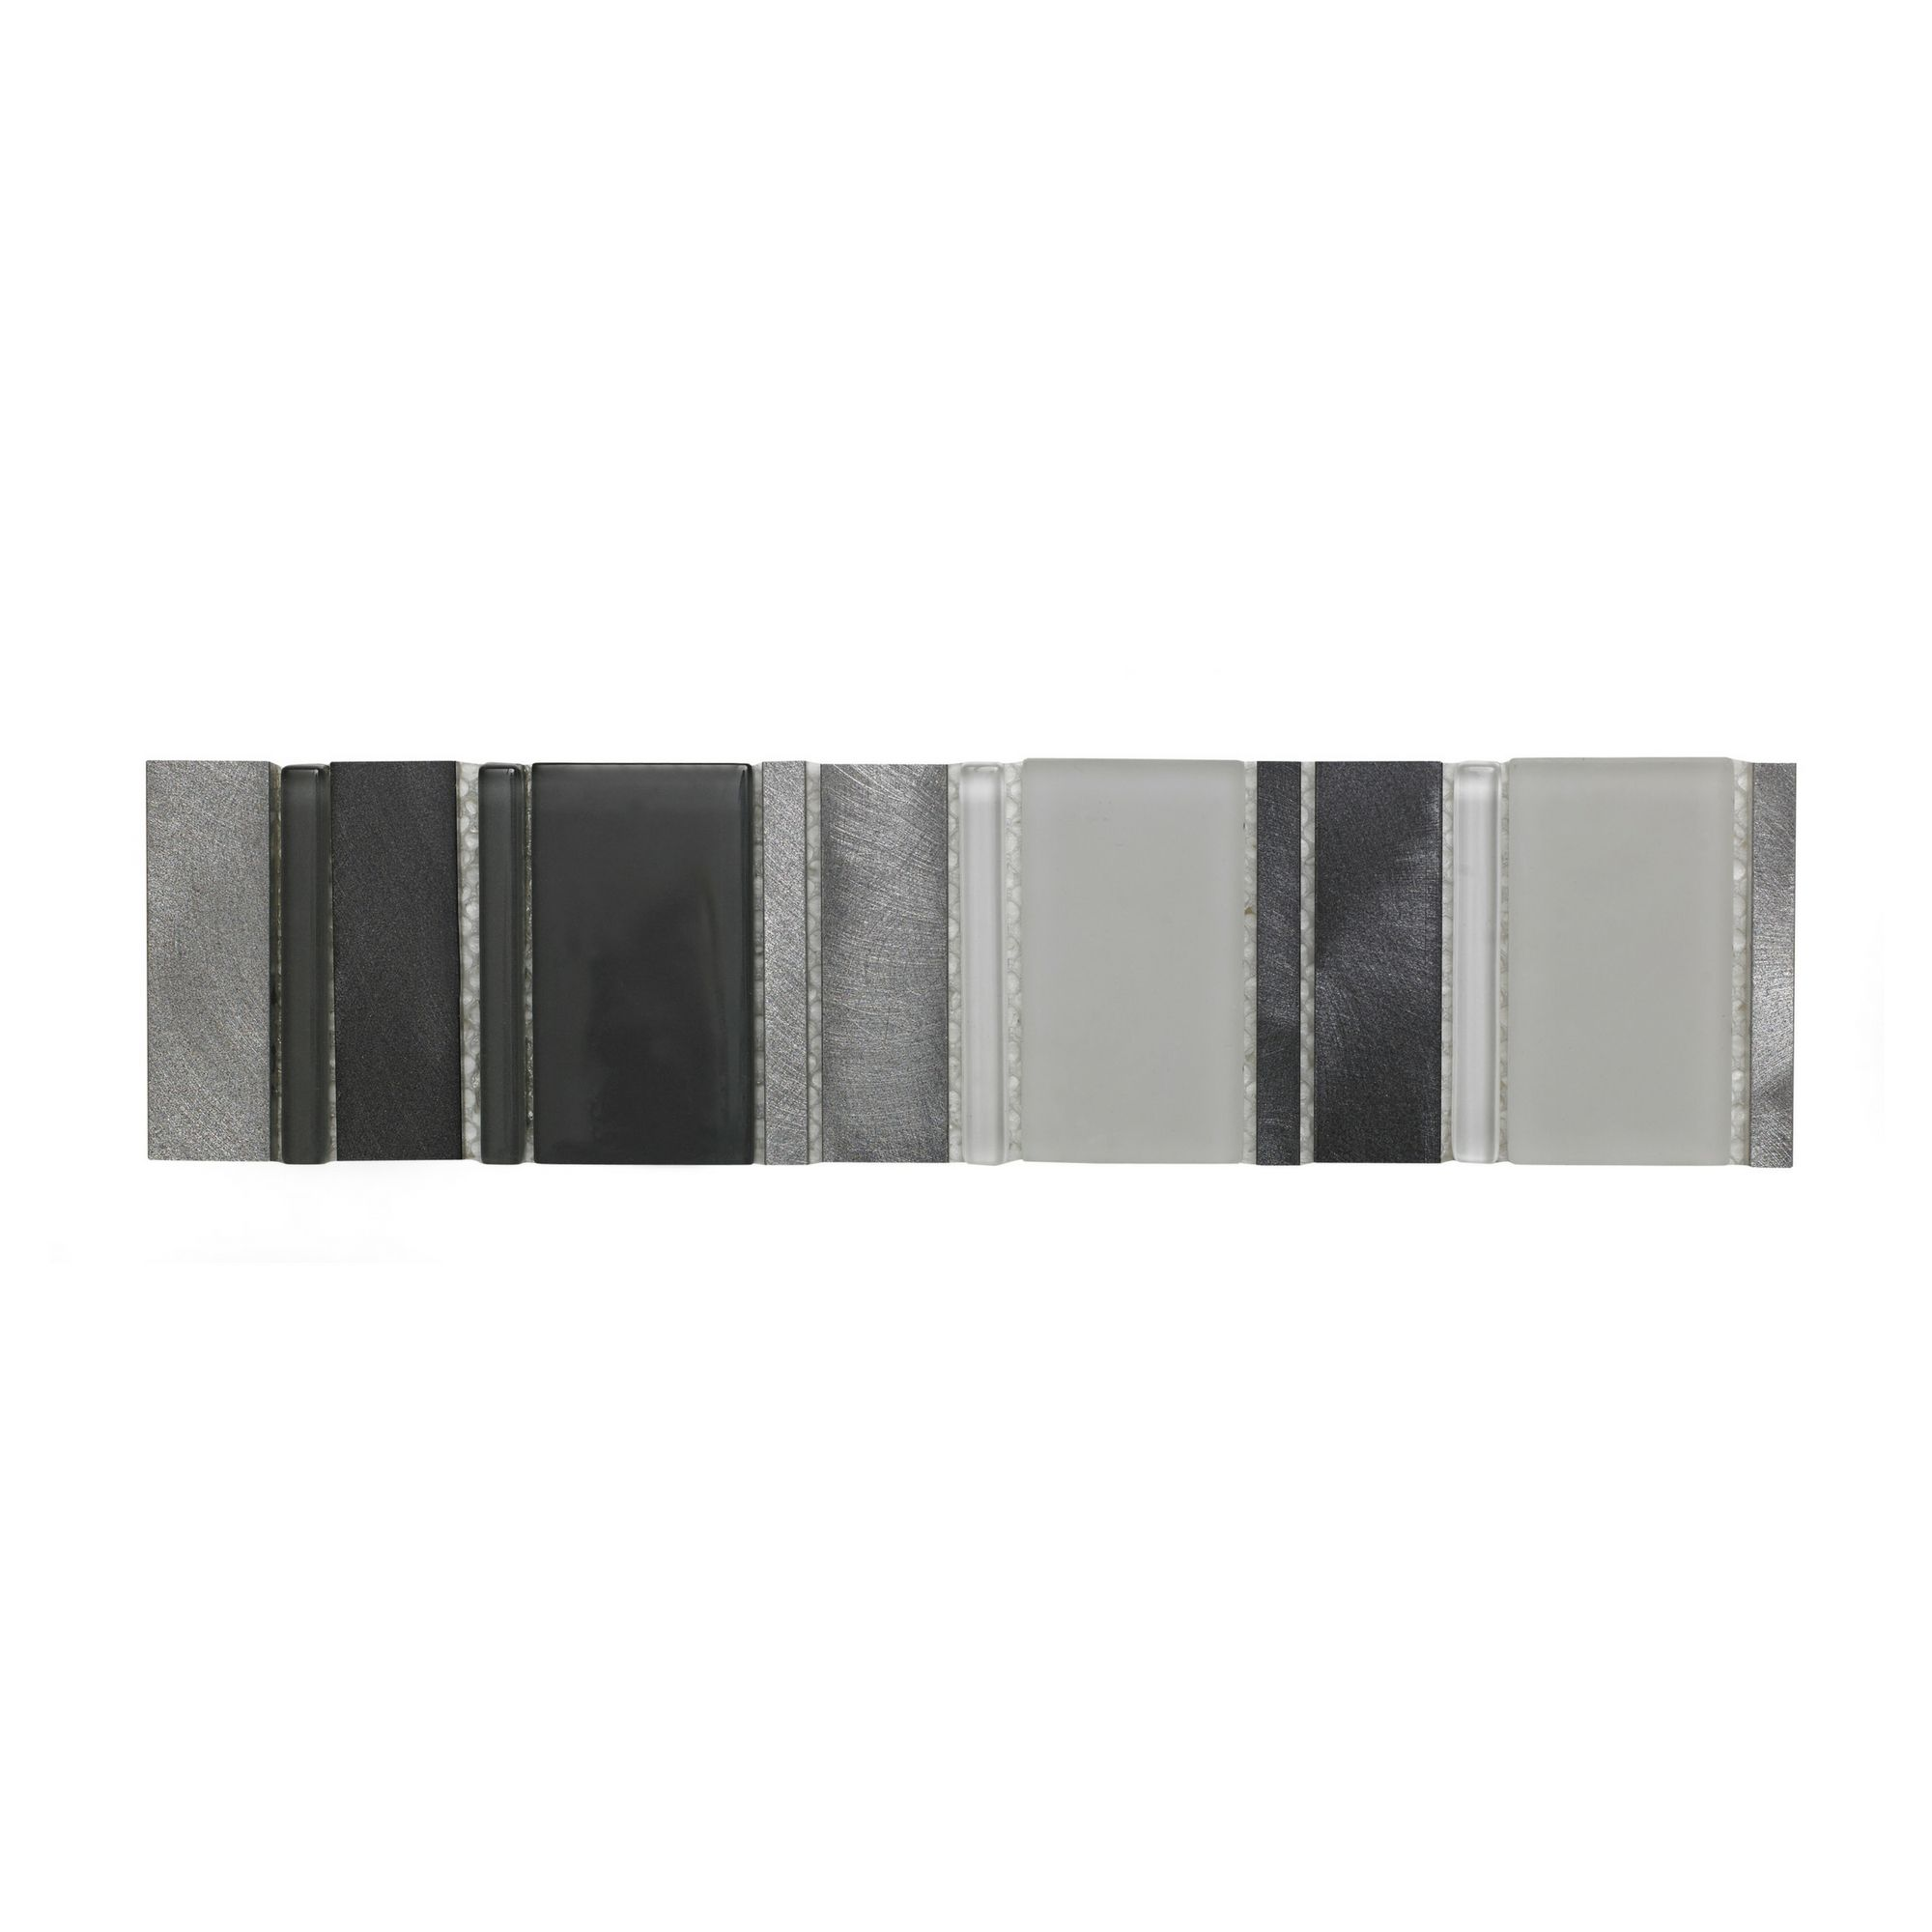 Arlington Silver Stone Effect Glass, Stone & Metal Border Tile, (l)300mm (w)75mm